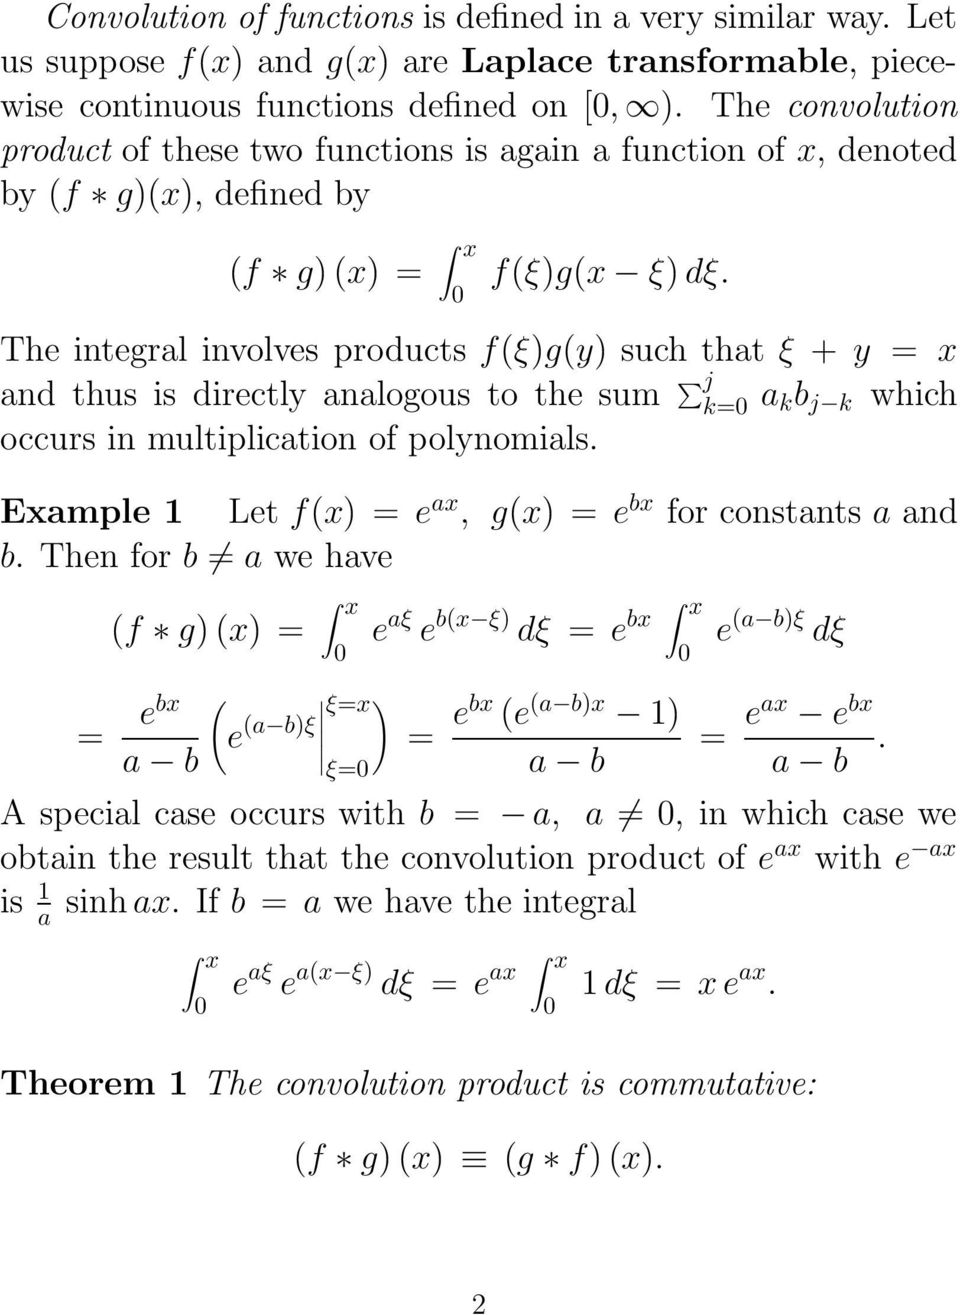 The integral involves products f(ξ)g(y) such that ξ + y = x and thus is directly analogous to the sum j k= a kb j k which occurs in multiplication of polynomials.